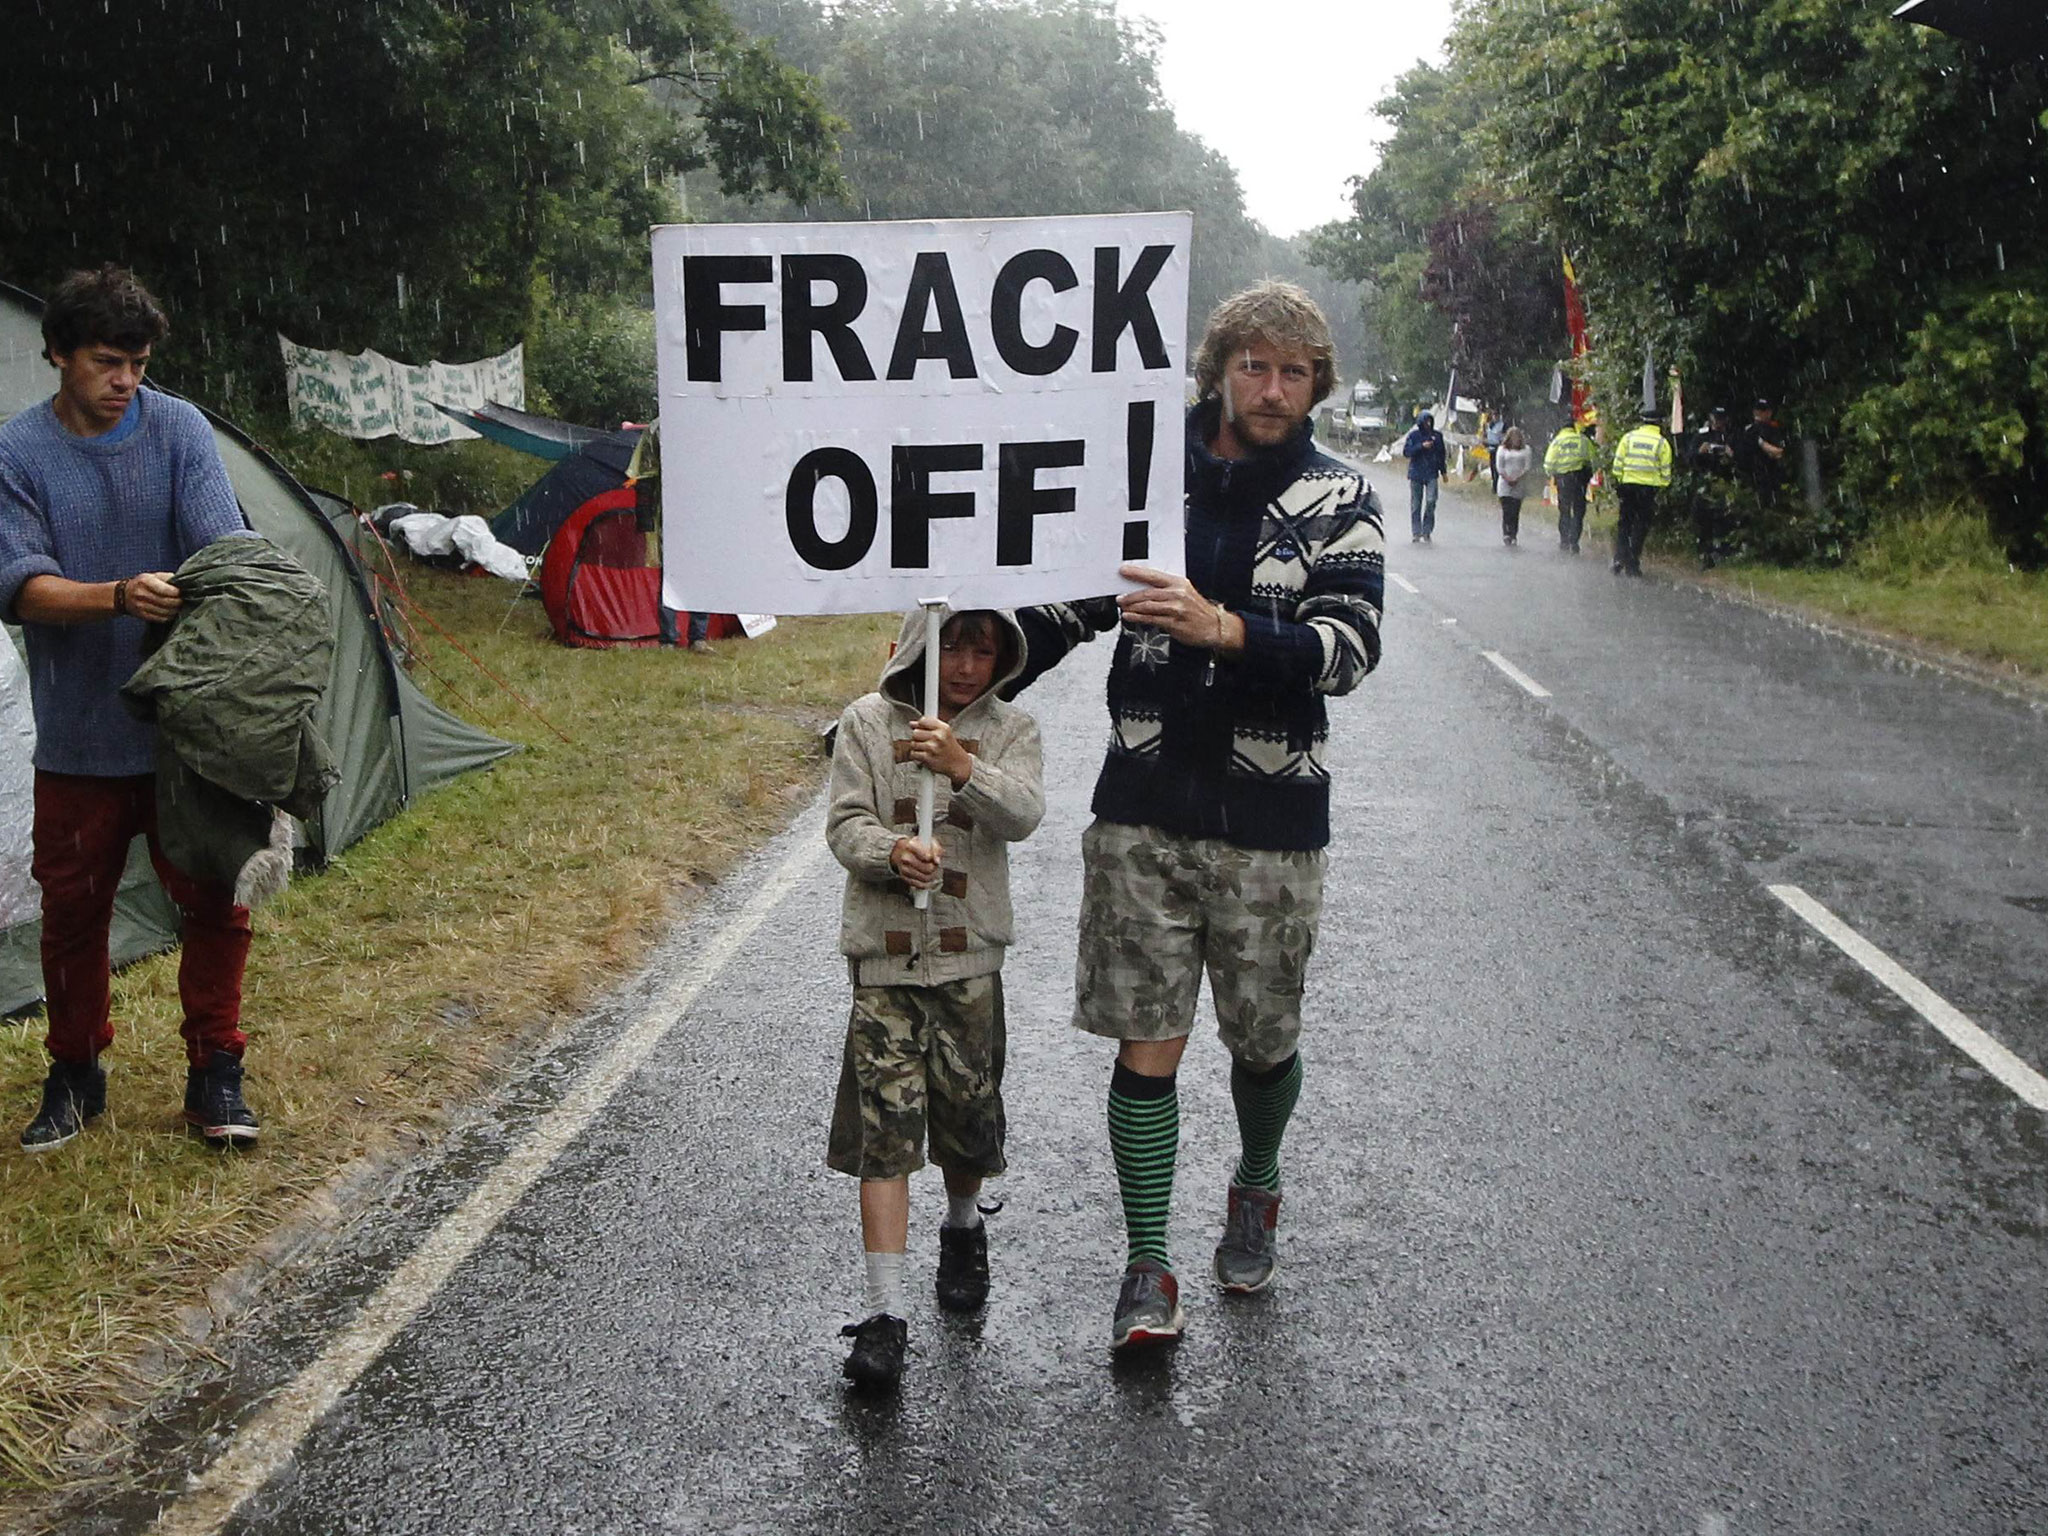 fracking-frack-off-dad-with-son